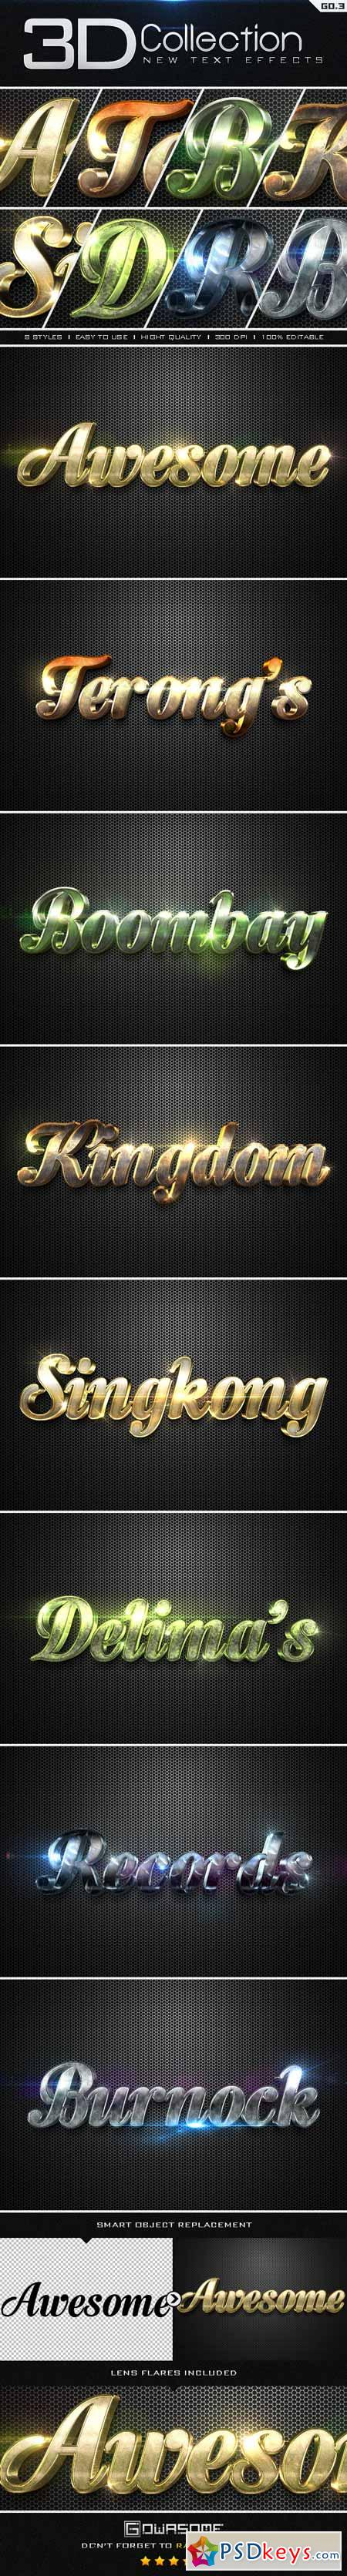 New 3D Collection Text Effects GO.3 9656922